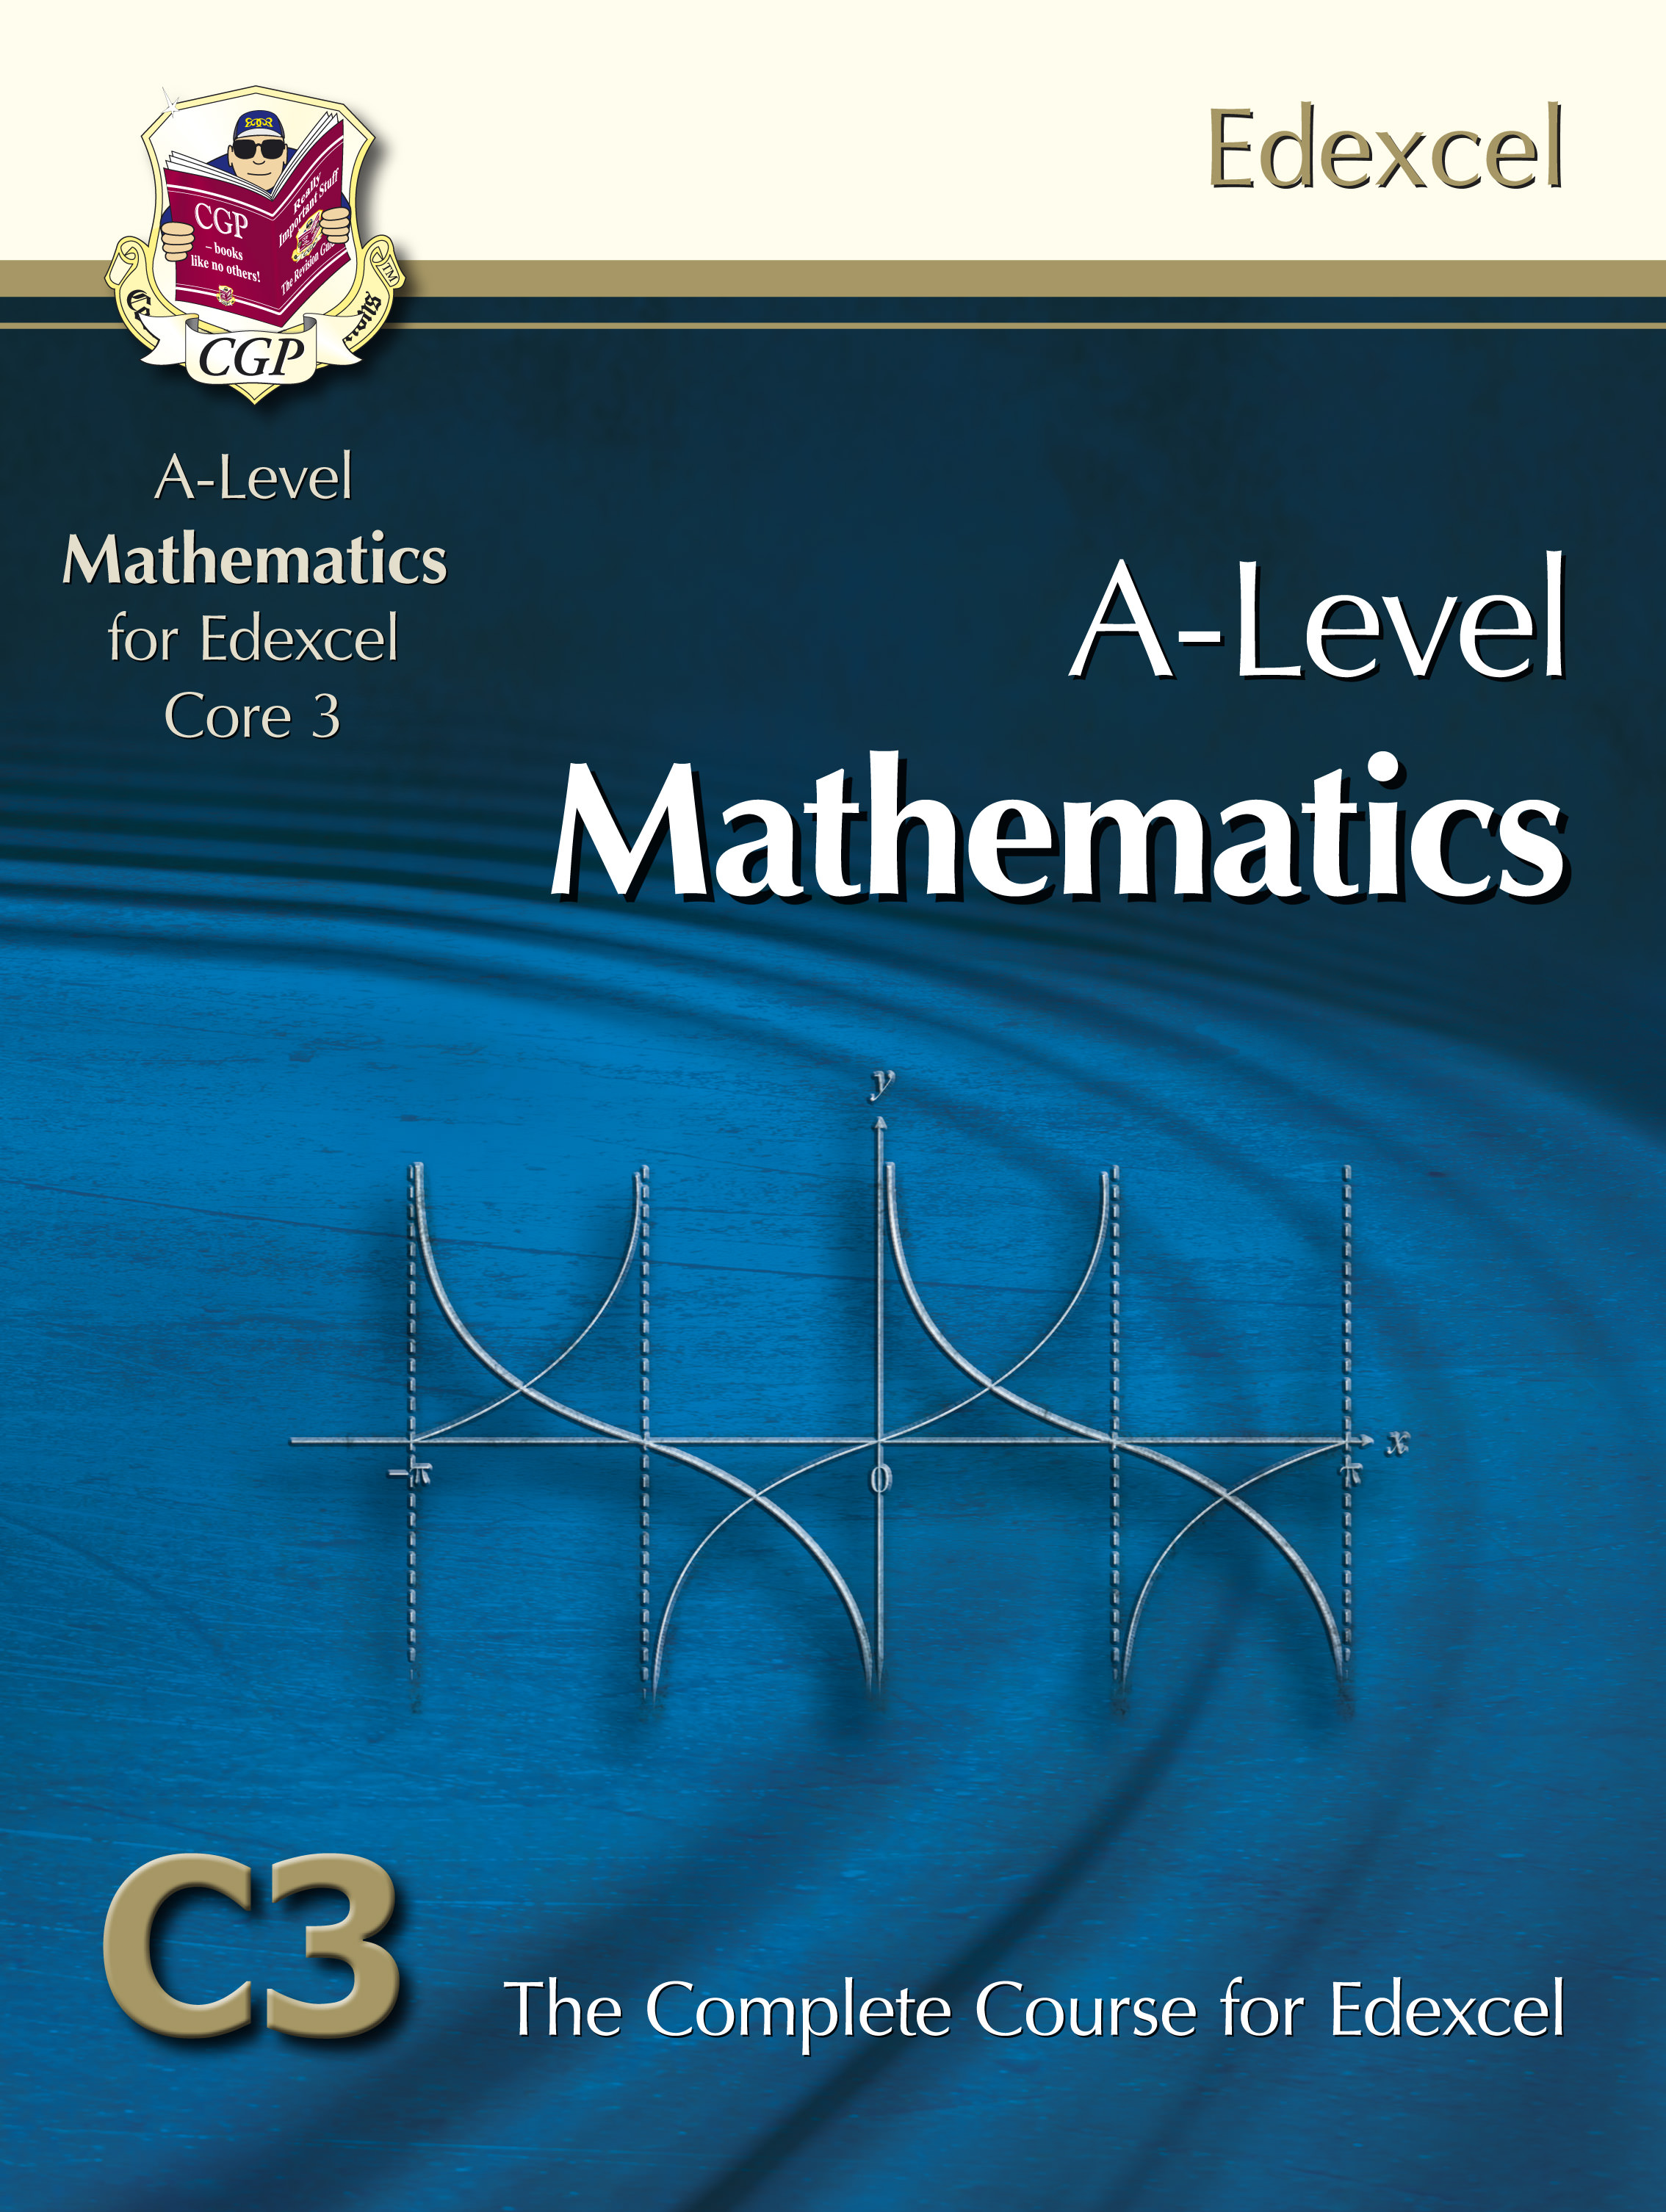 MEC3T61DK - A2-Level Maths for Edexcel - Core 3: Student Book